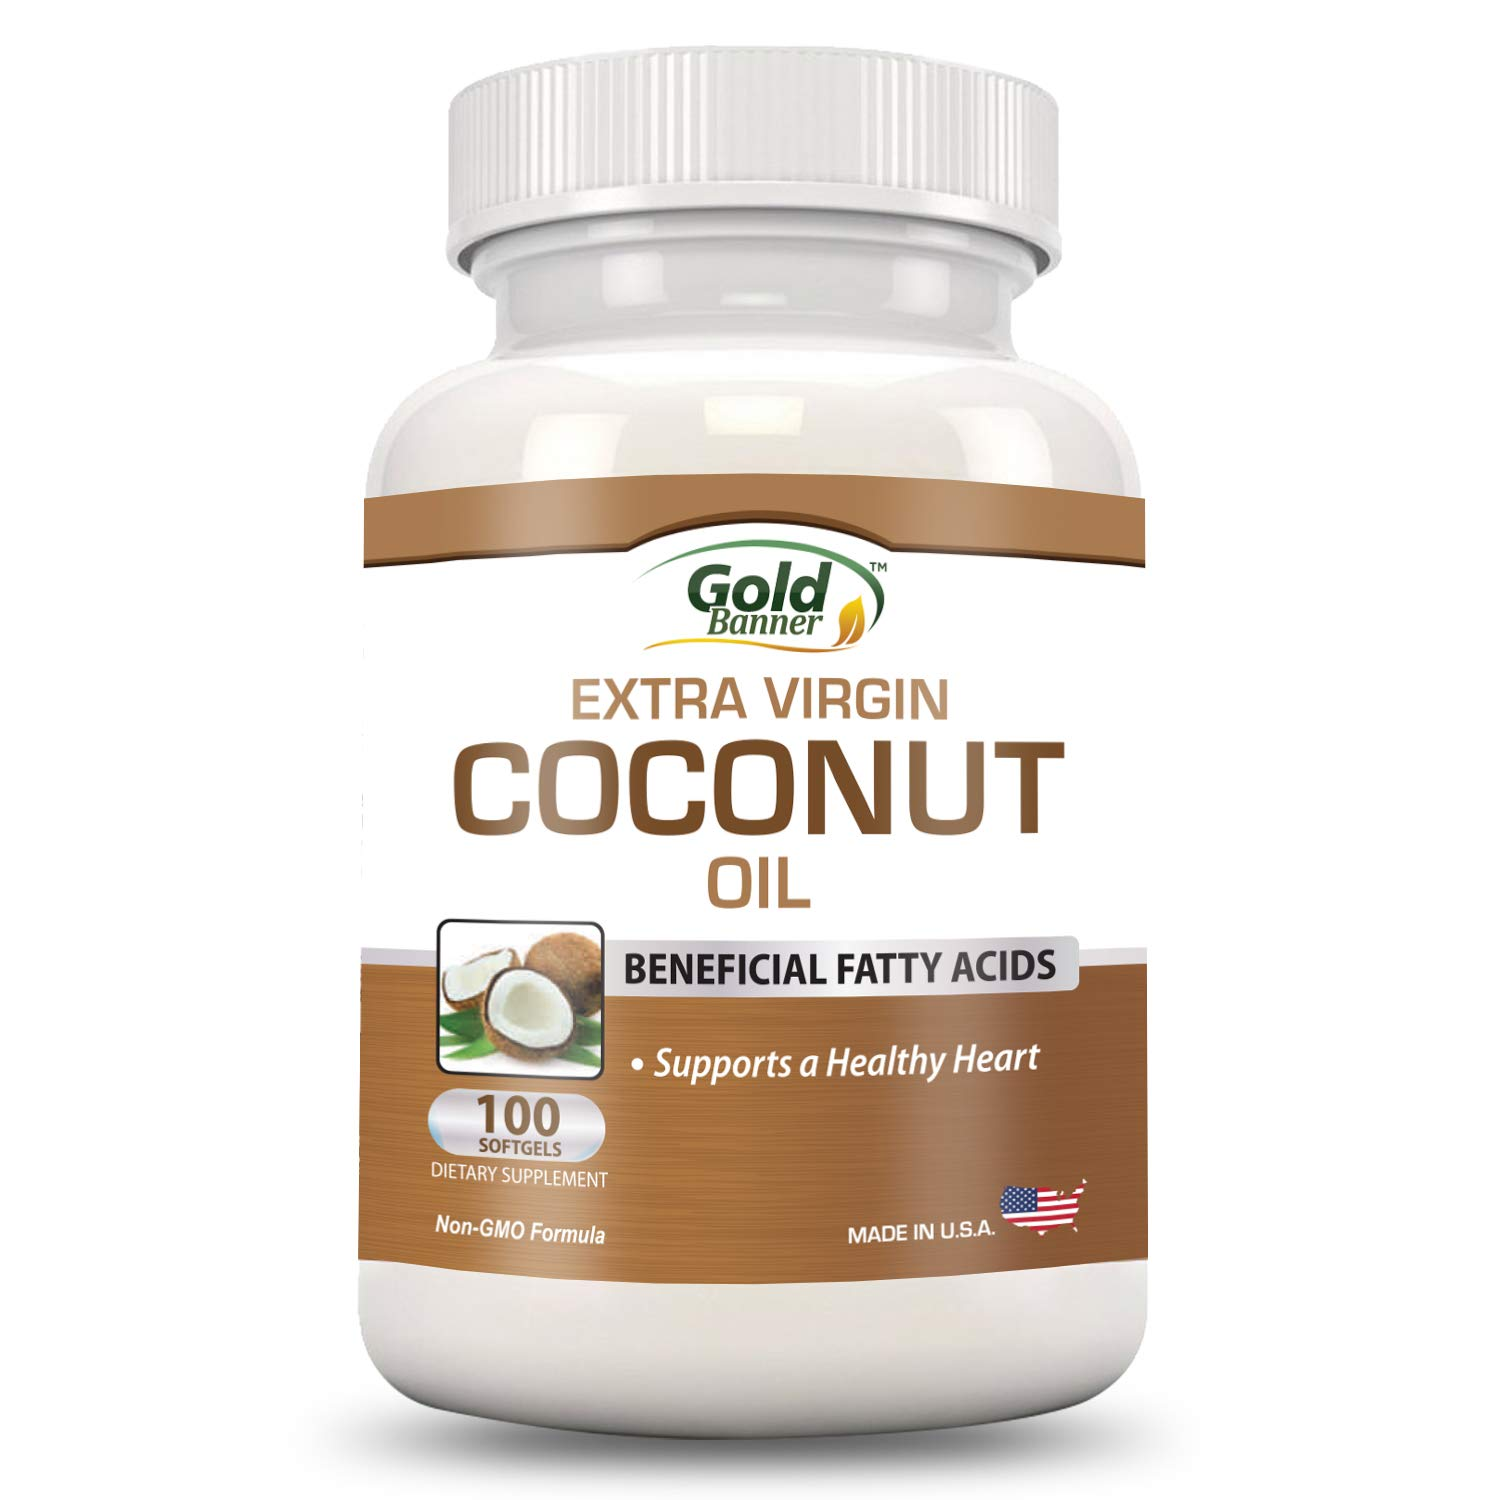 Extra Virgin Organic Coconut Oil Capsules - Improve Immunity & Brain Function Supports Healthy Heart - 100 Softgels, 1000mg Each - Cold-Pressed - GMP Compliant Facility - Made in the USA - Gold Banner